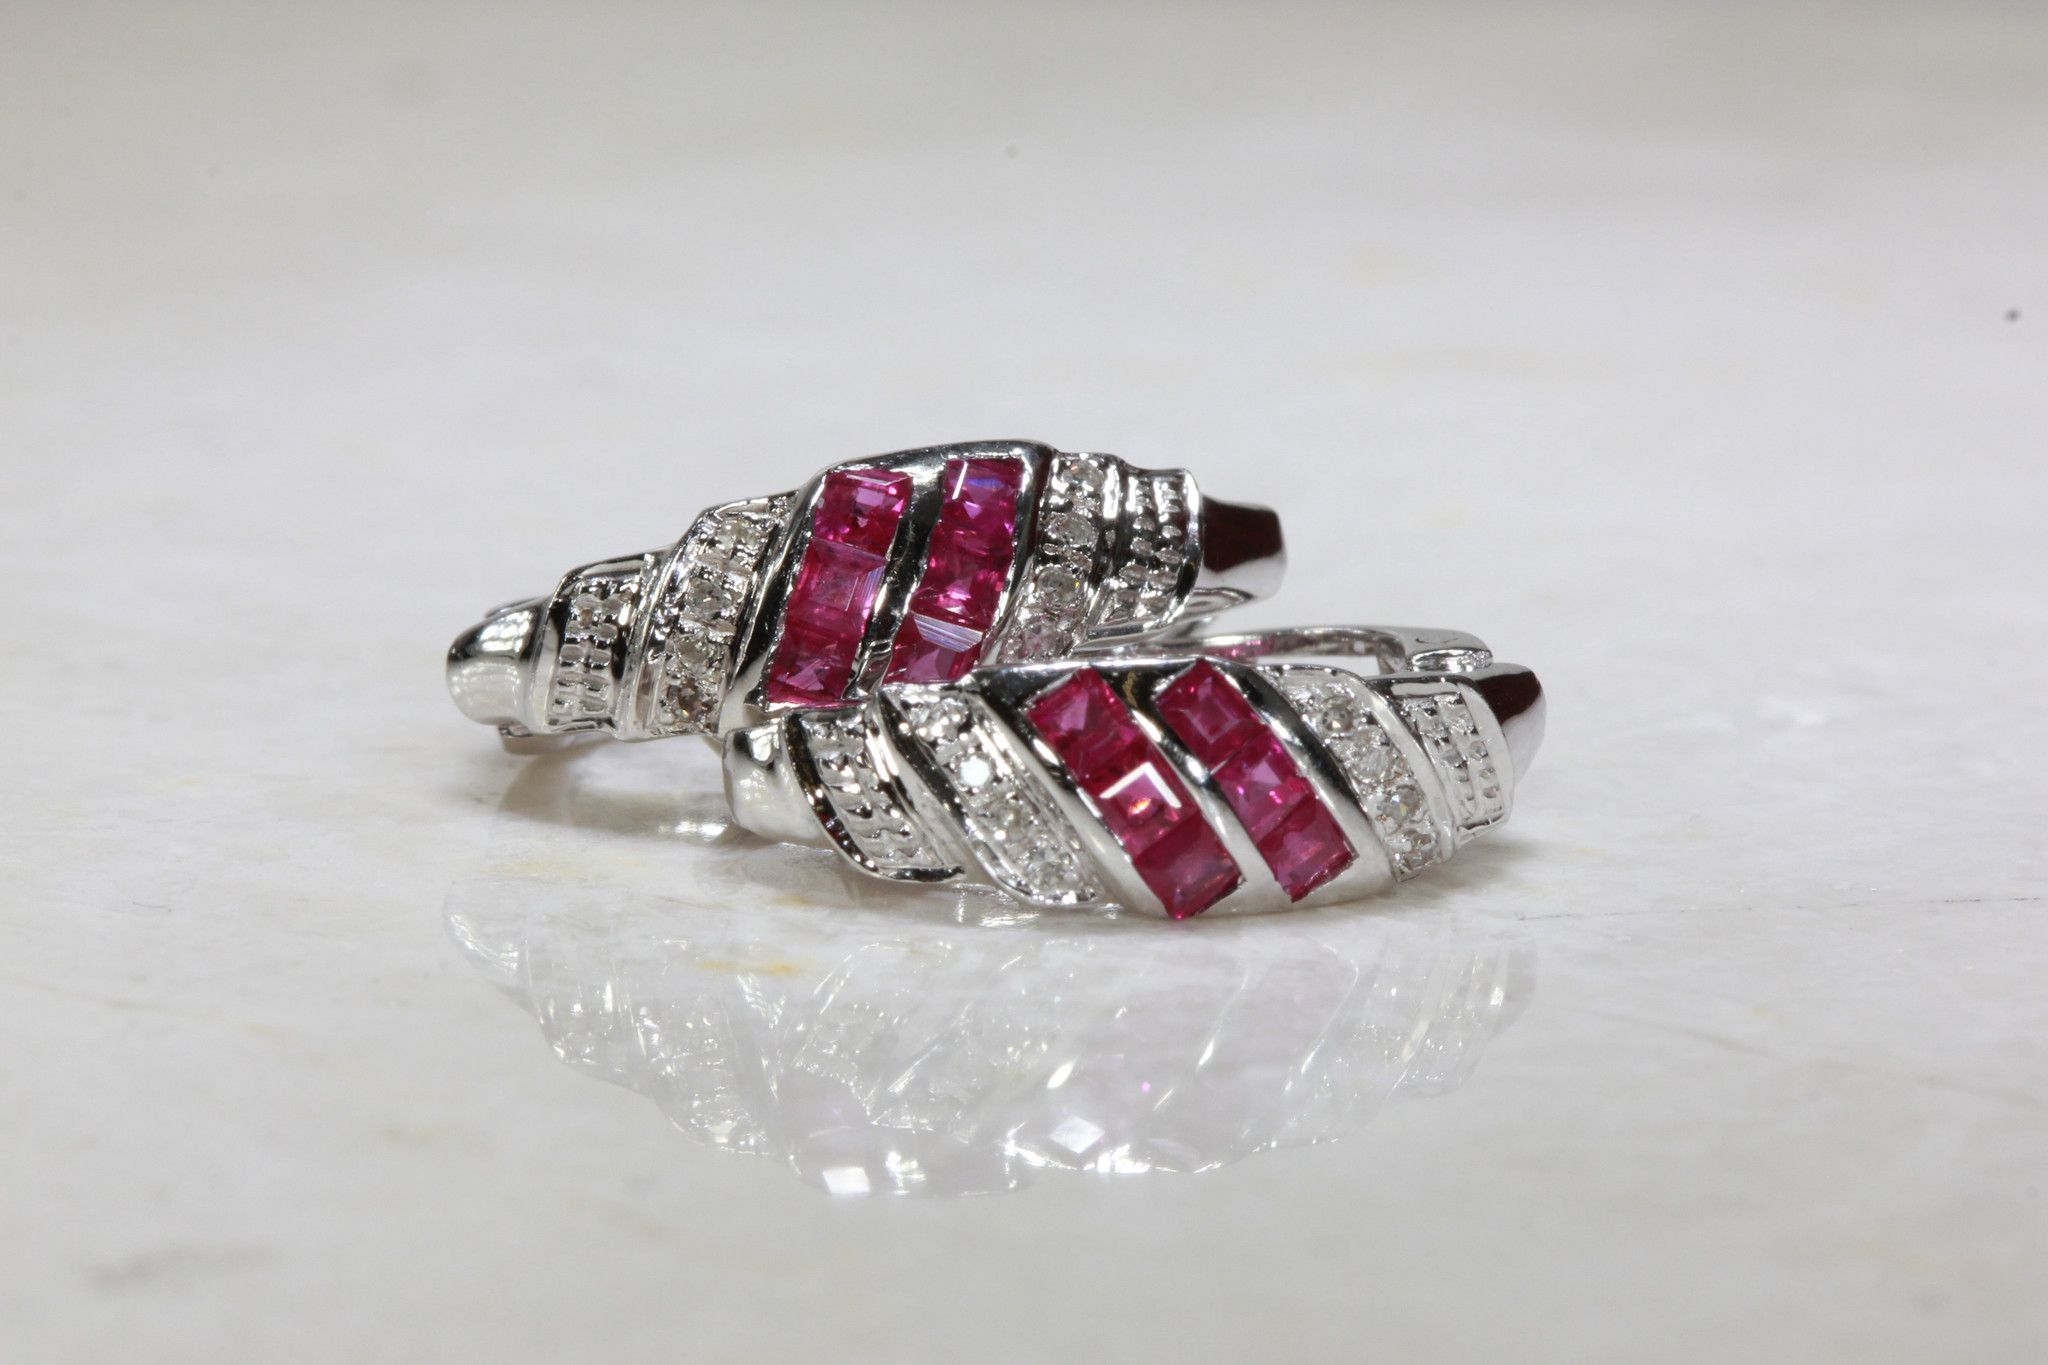 PRINCESS CUT RUBY & ROUND DIAMOND EARRING IN 14k WHITE GOLD SETTING